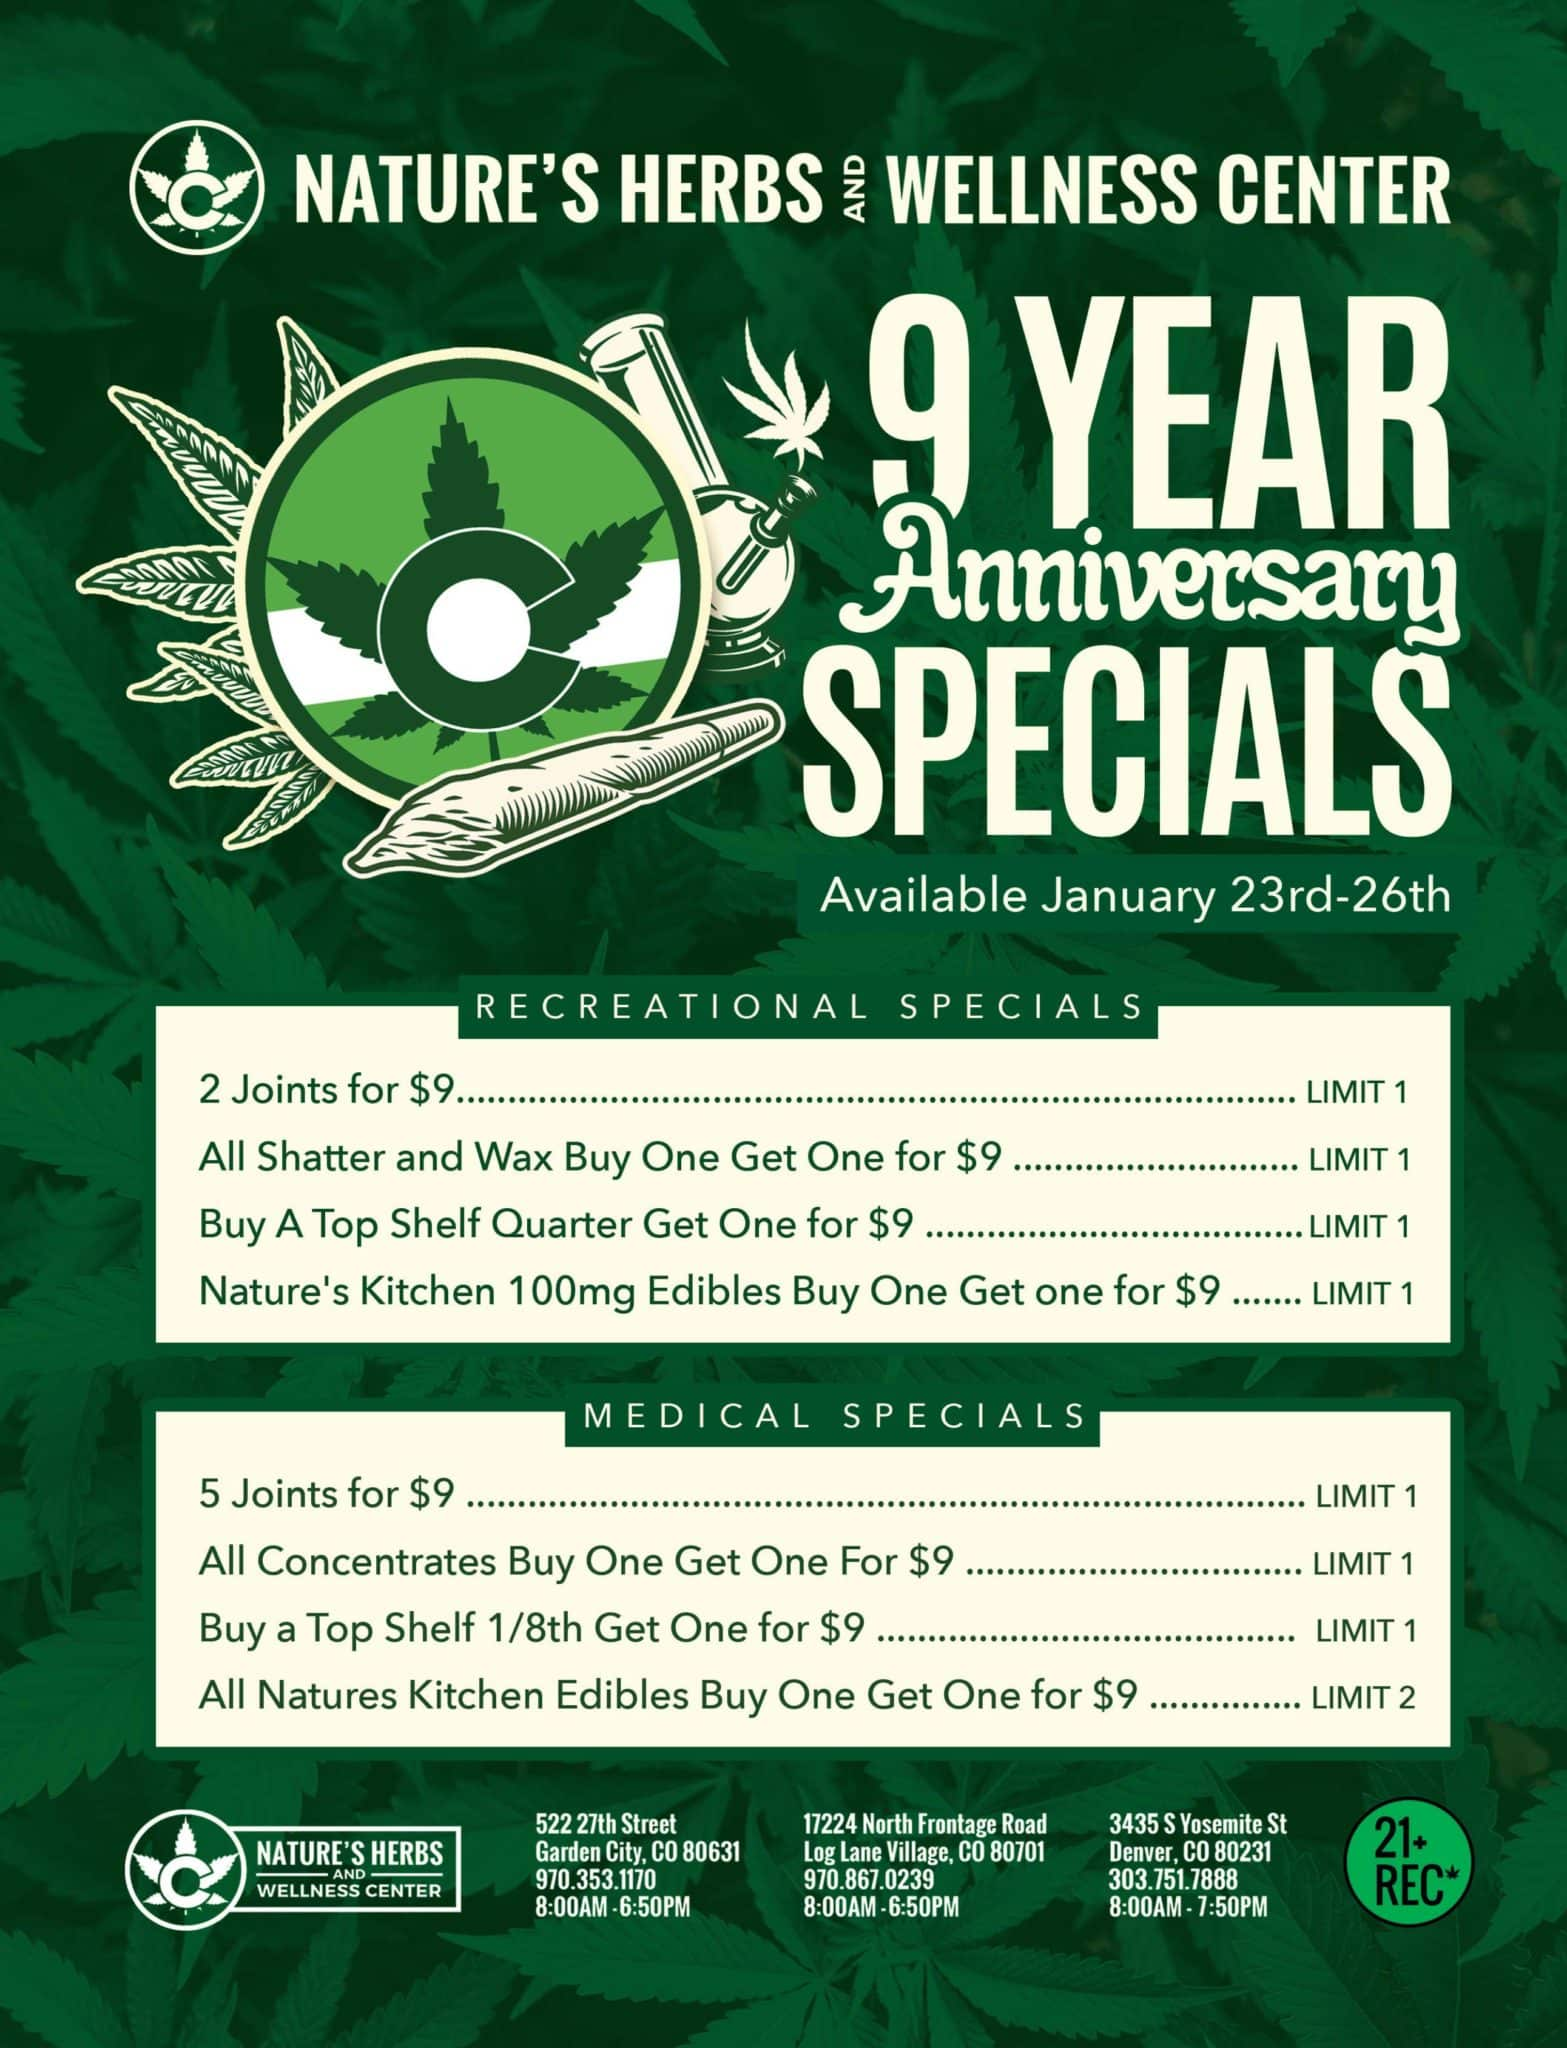 Nature's Herbs 9 Year Anniversary Specials